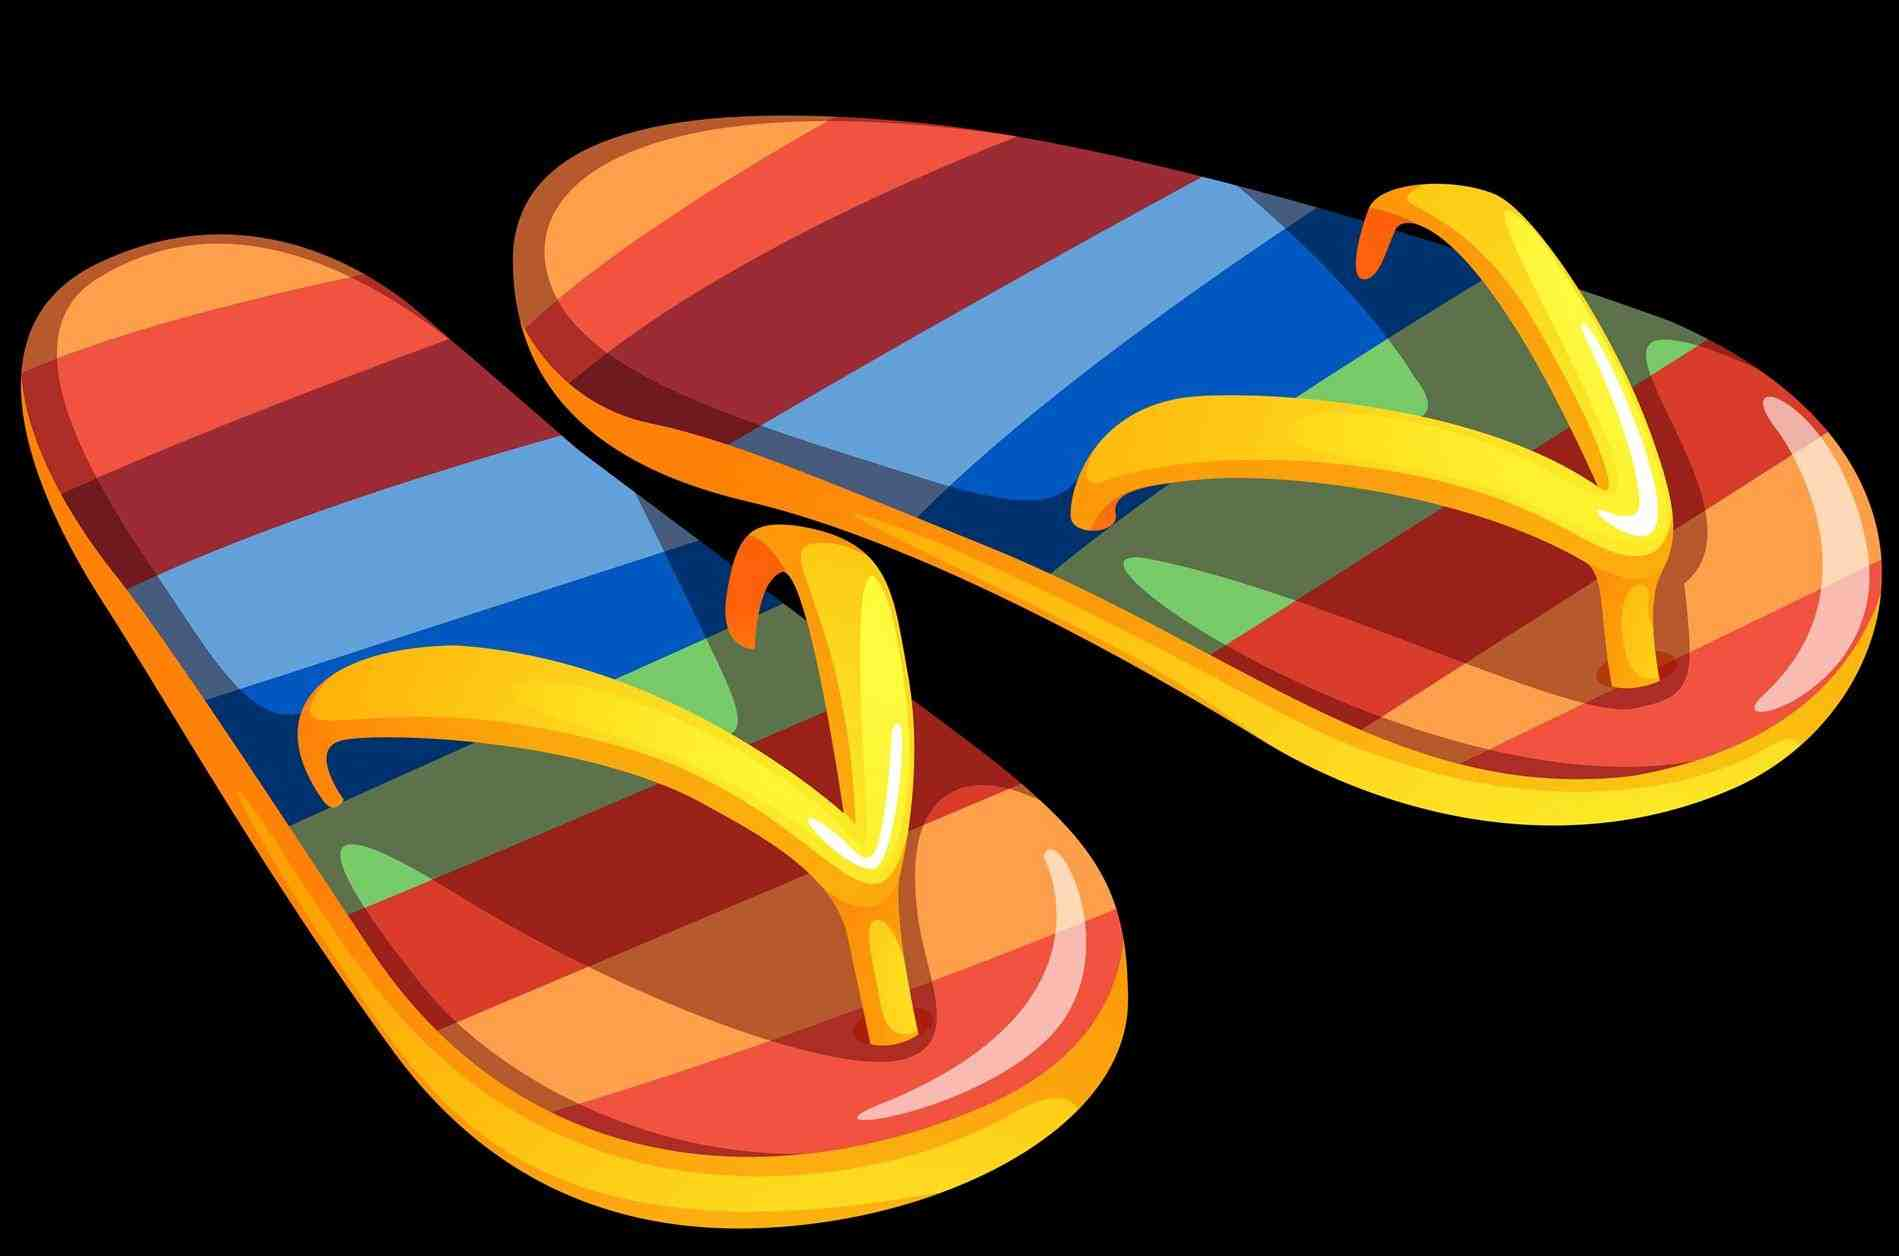 1899x1256 Slippers Clipart Sandals Club Penguin Wiki Fandom Powered By Wikia